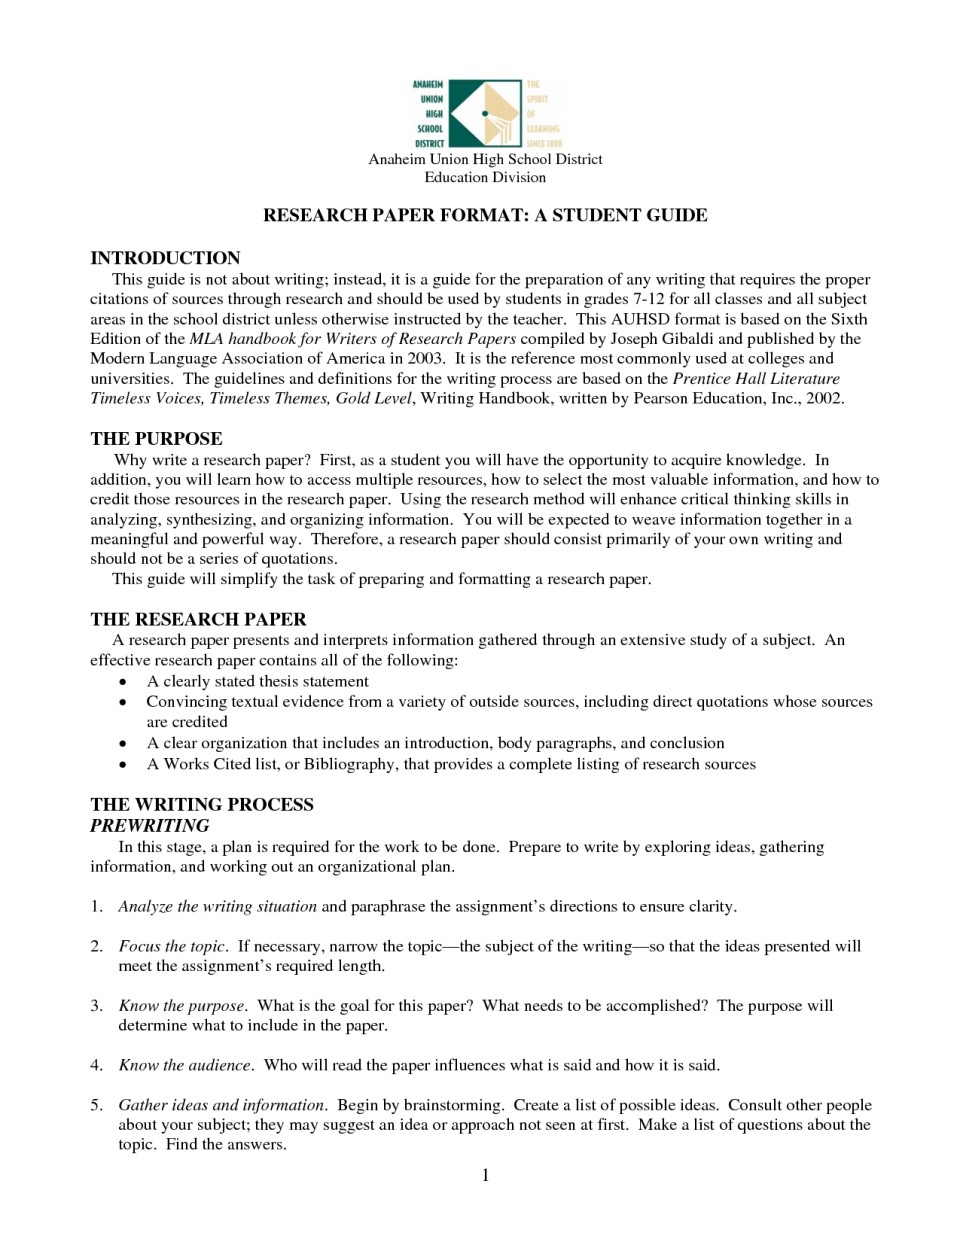 021 Research Paper Proposal Topic Astounding Ideas Education Psychology Business 960